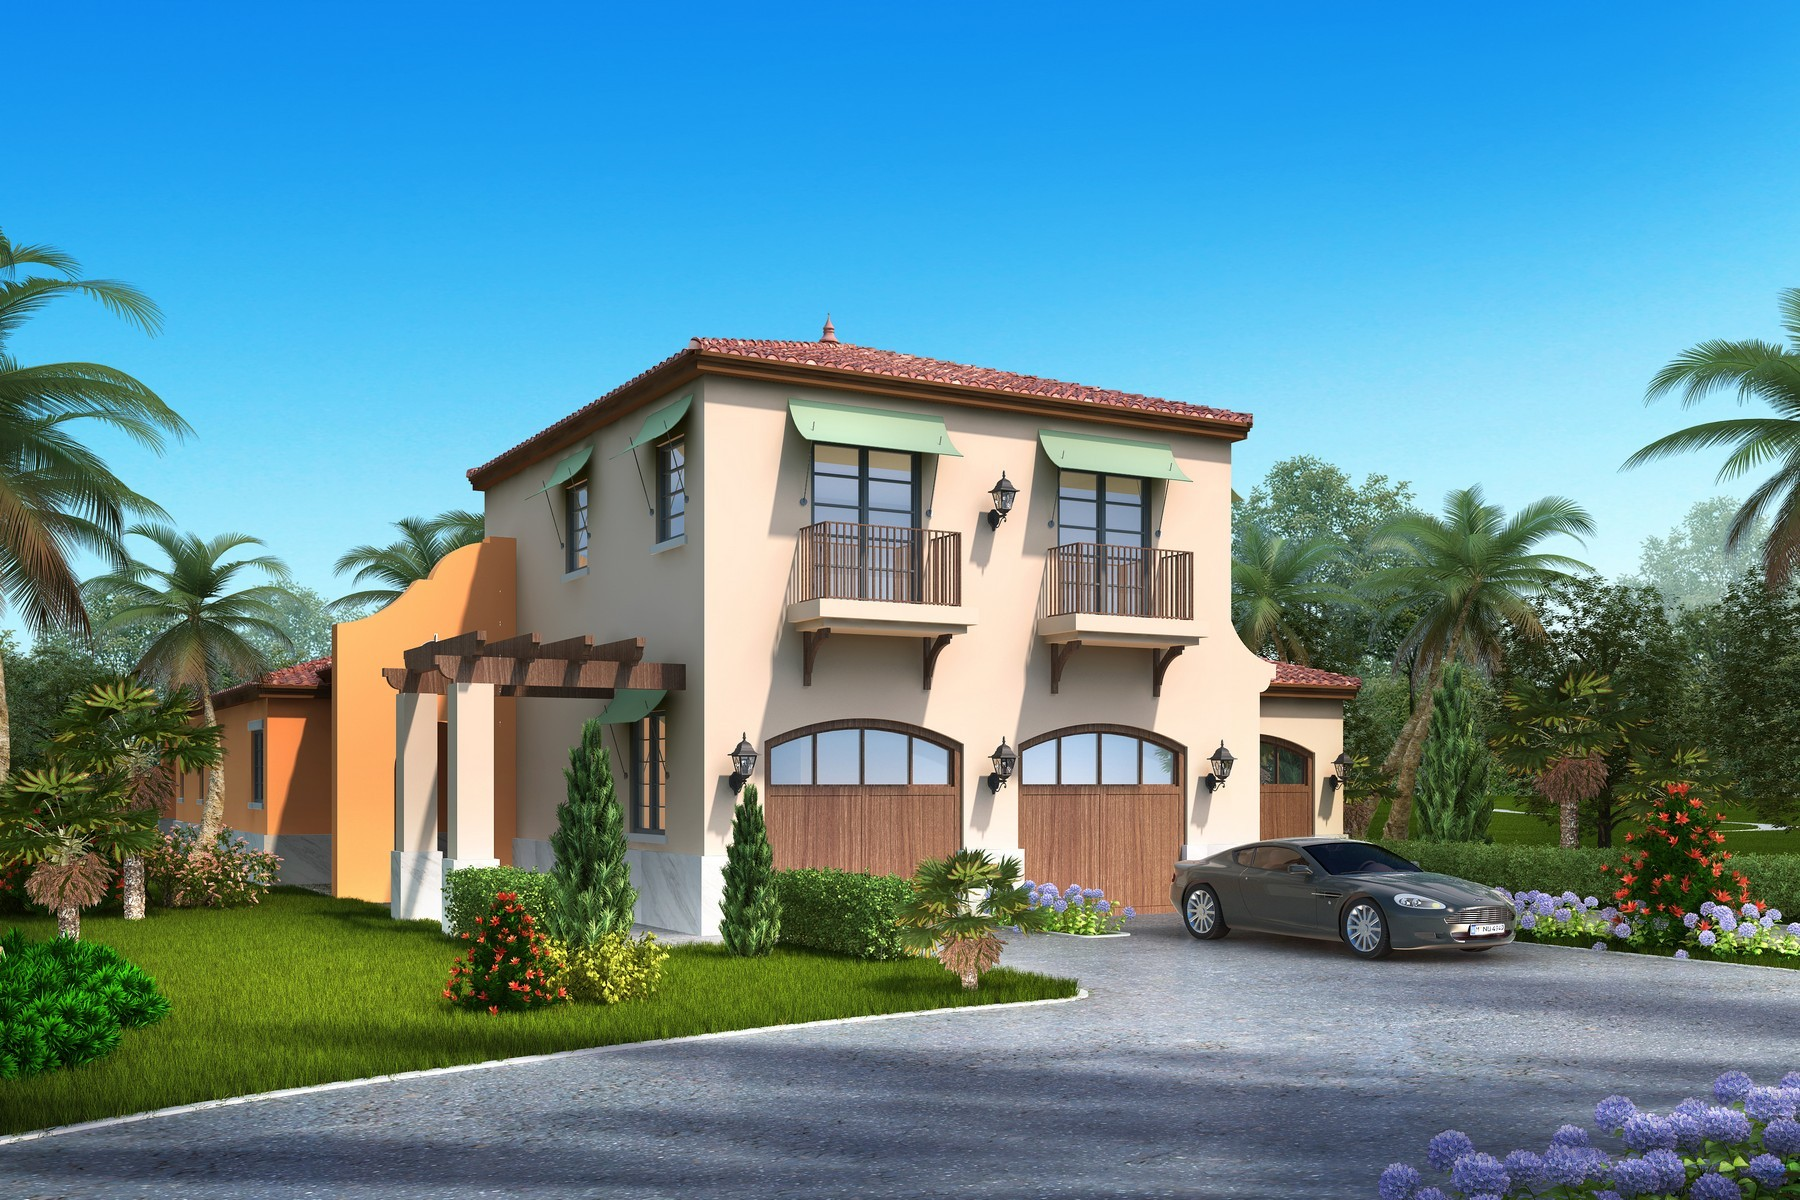 Maison unifamiliale pour l Vente à To be Constructed Savvy Courtyard Home 180 Whaler Drive Melbourne Beach, Florida, 32951 États-Unis